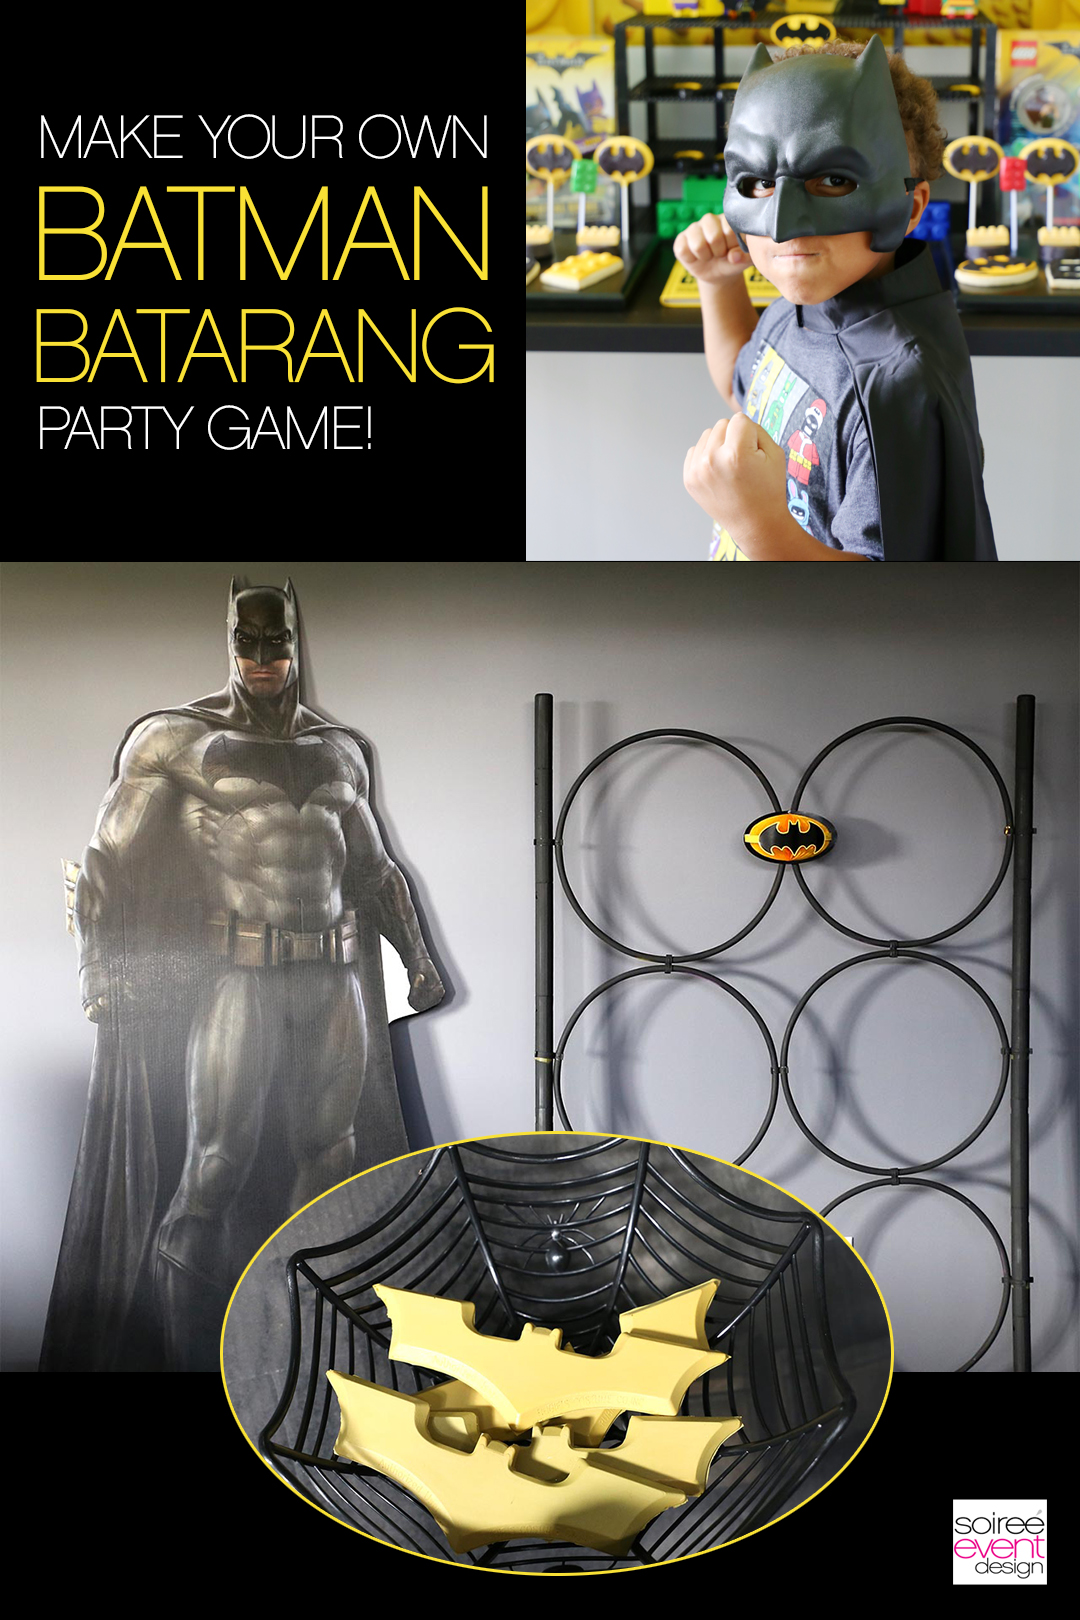 LEGO Batman Party Activites - DIY Batman Batarang Game